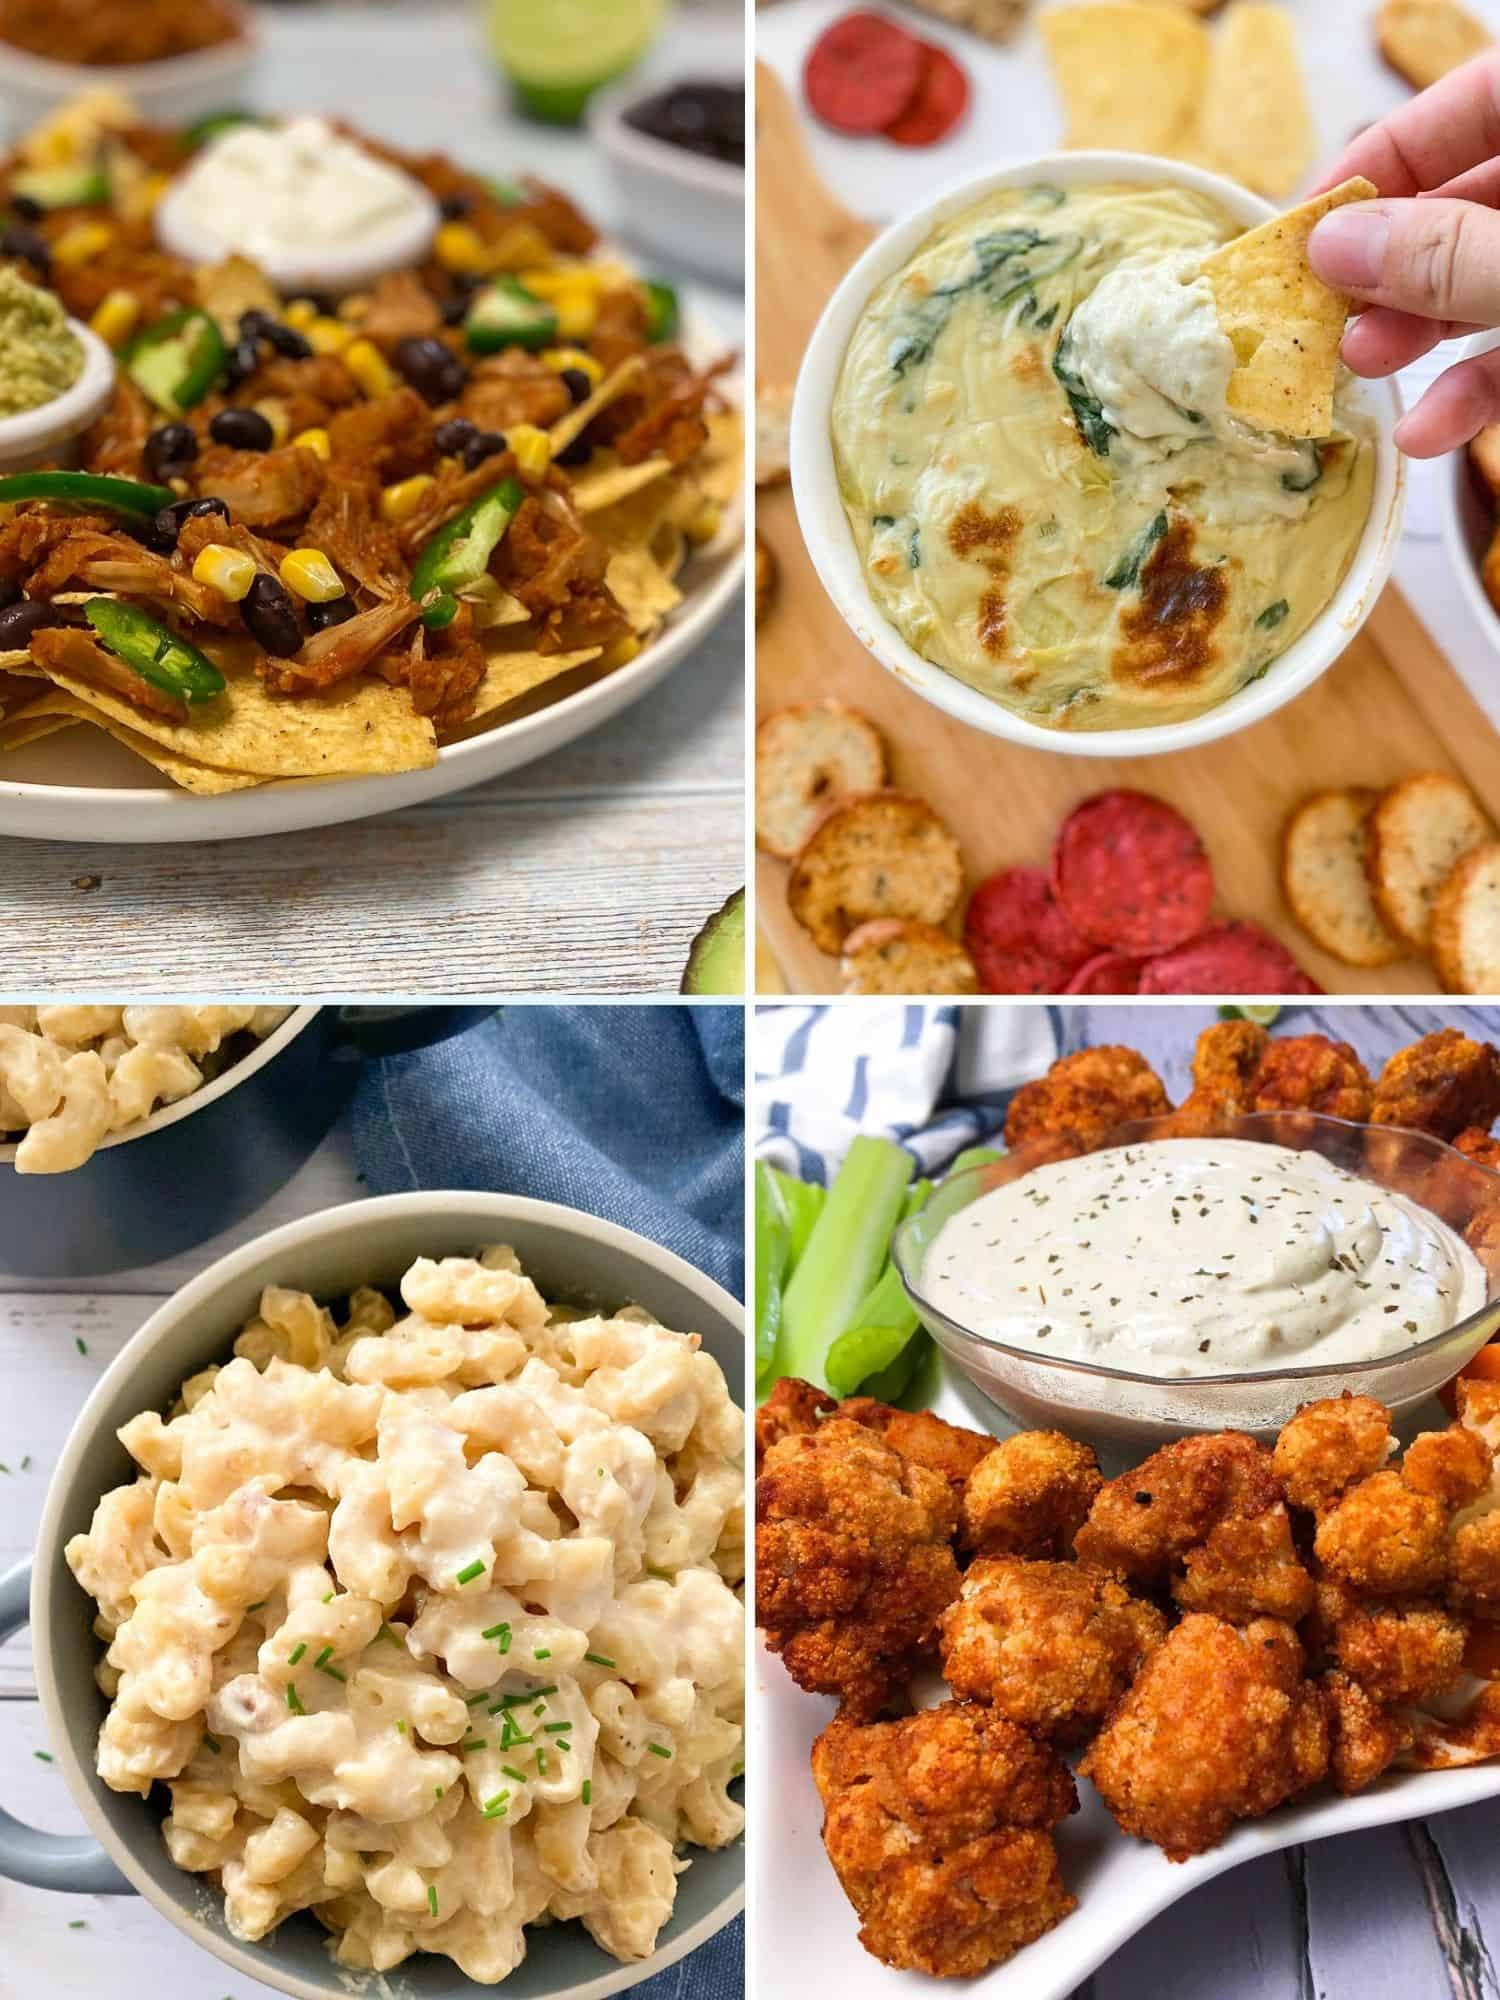 Collage of vegan superbowl food: nachos, dip, mac and cheese, cauliflower wings.